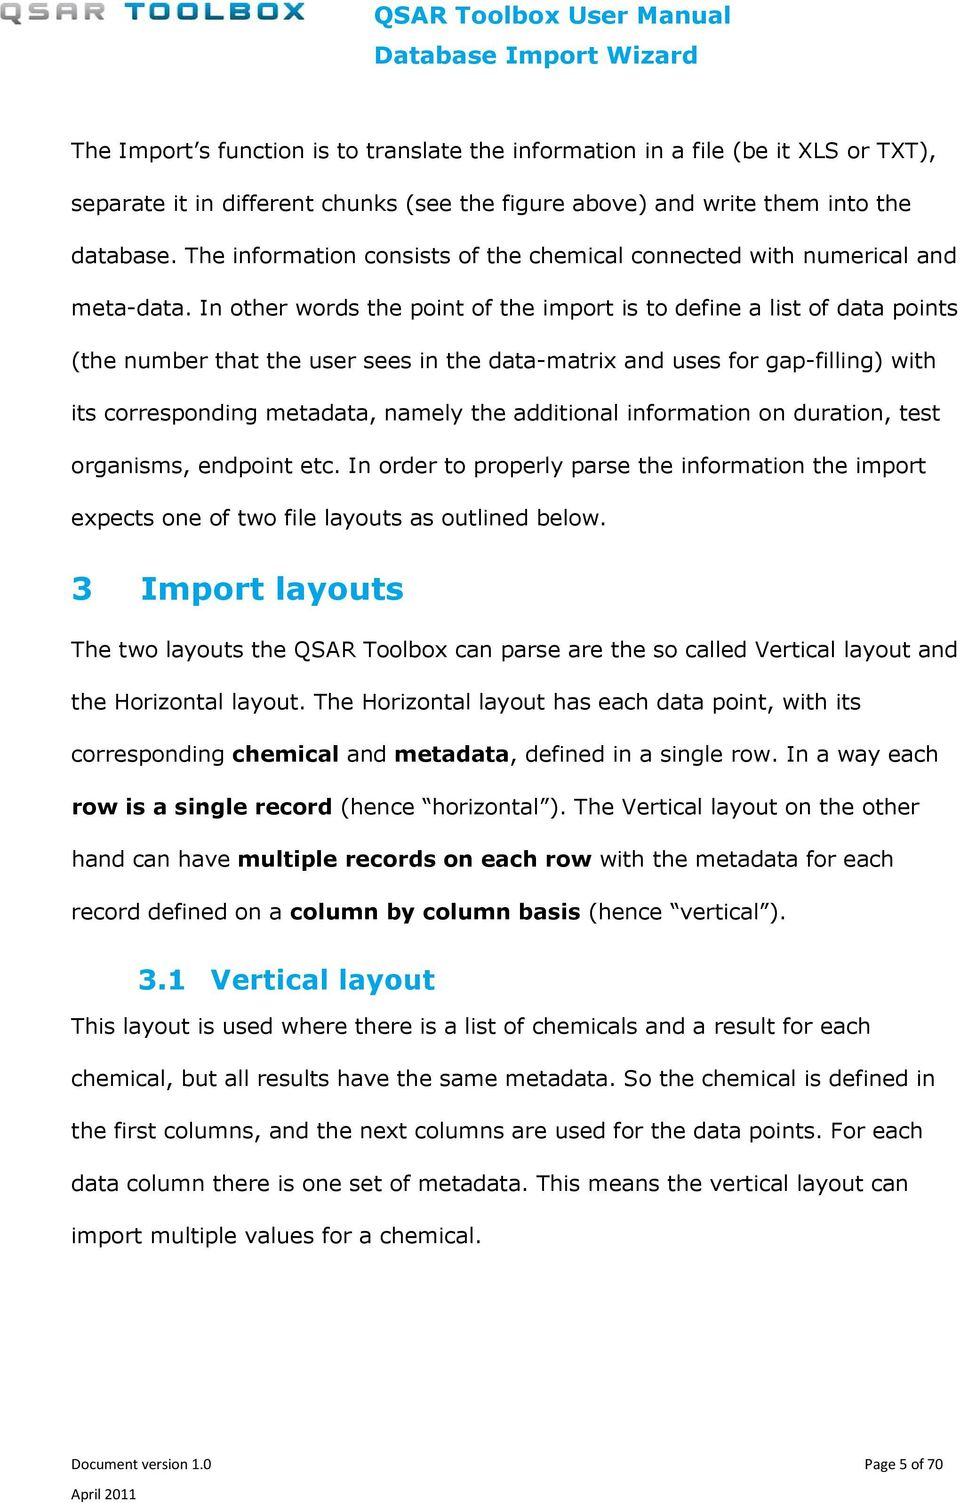 In other words the point of the import is to define a list of data points (the number that the user sees in the data-matrix and uses for gap-filling) with its corresponding metadata, namely the